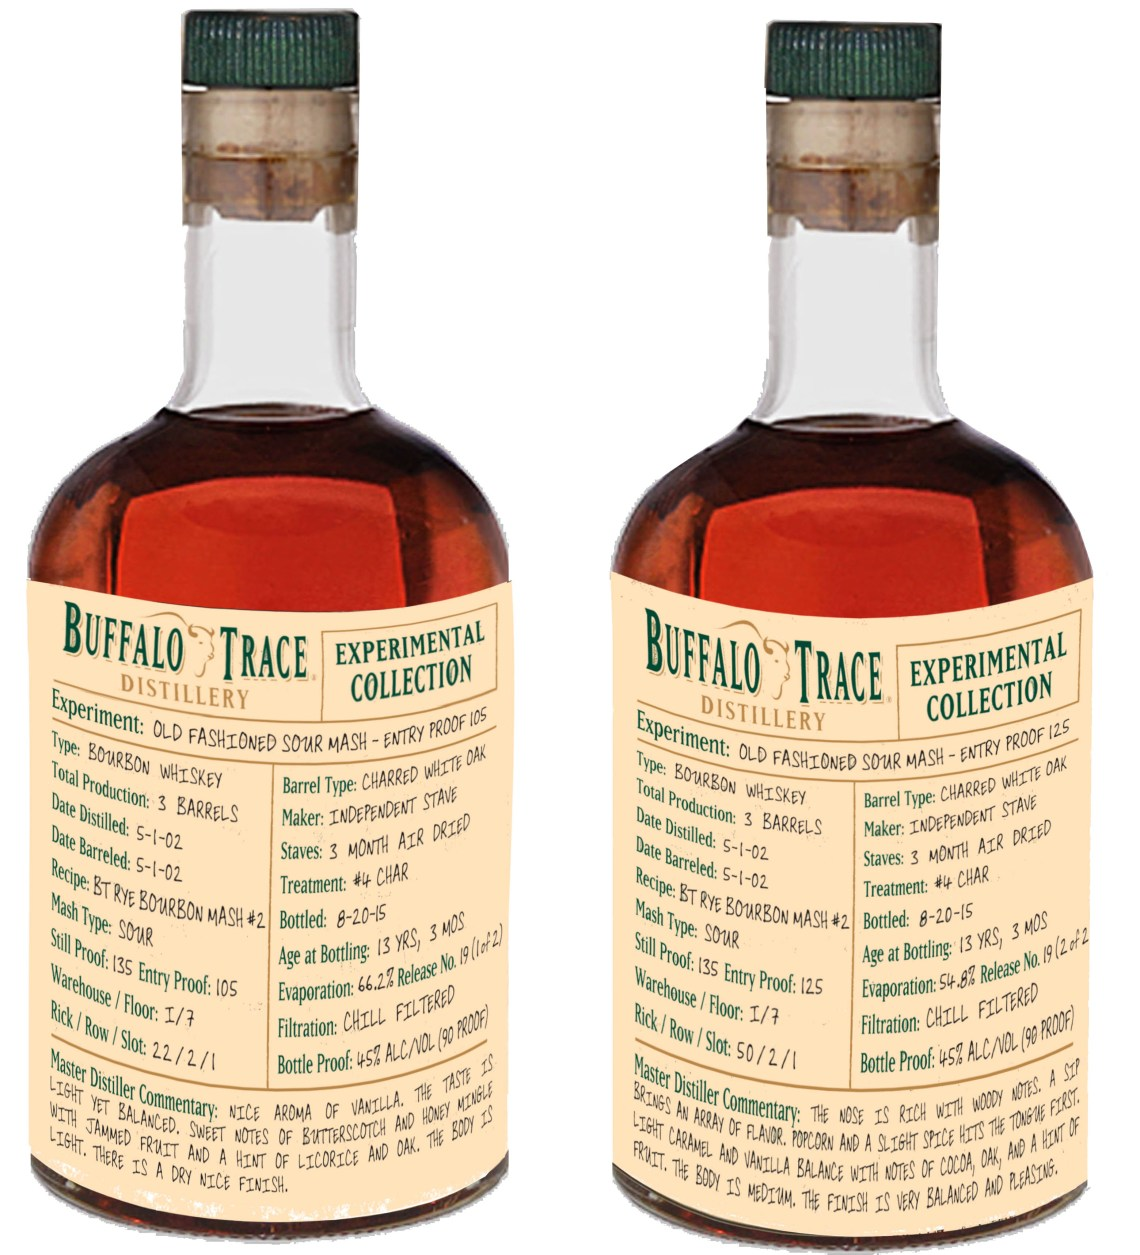 Buffalo Trace Experimental Collection – Old Fashioned Sour Mash 13 Years Old 125 Entry Proof